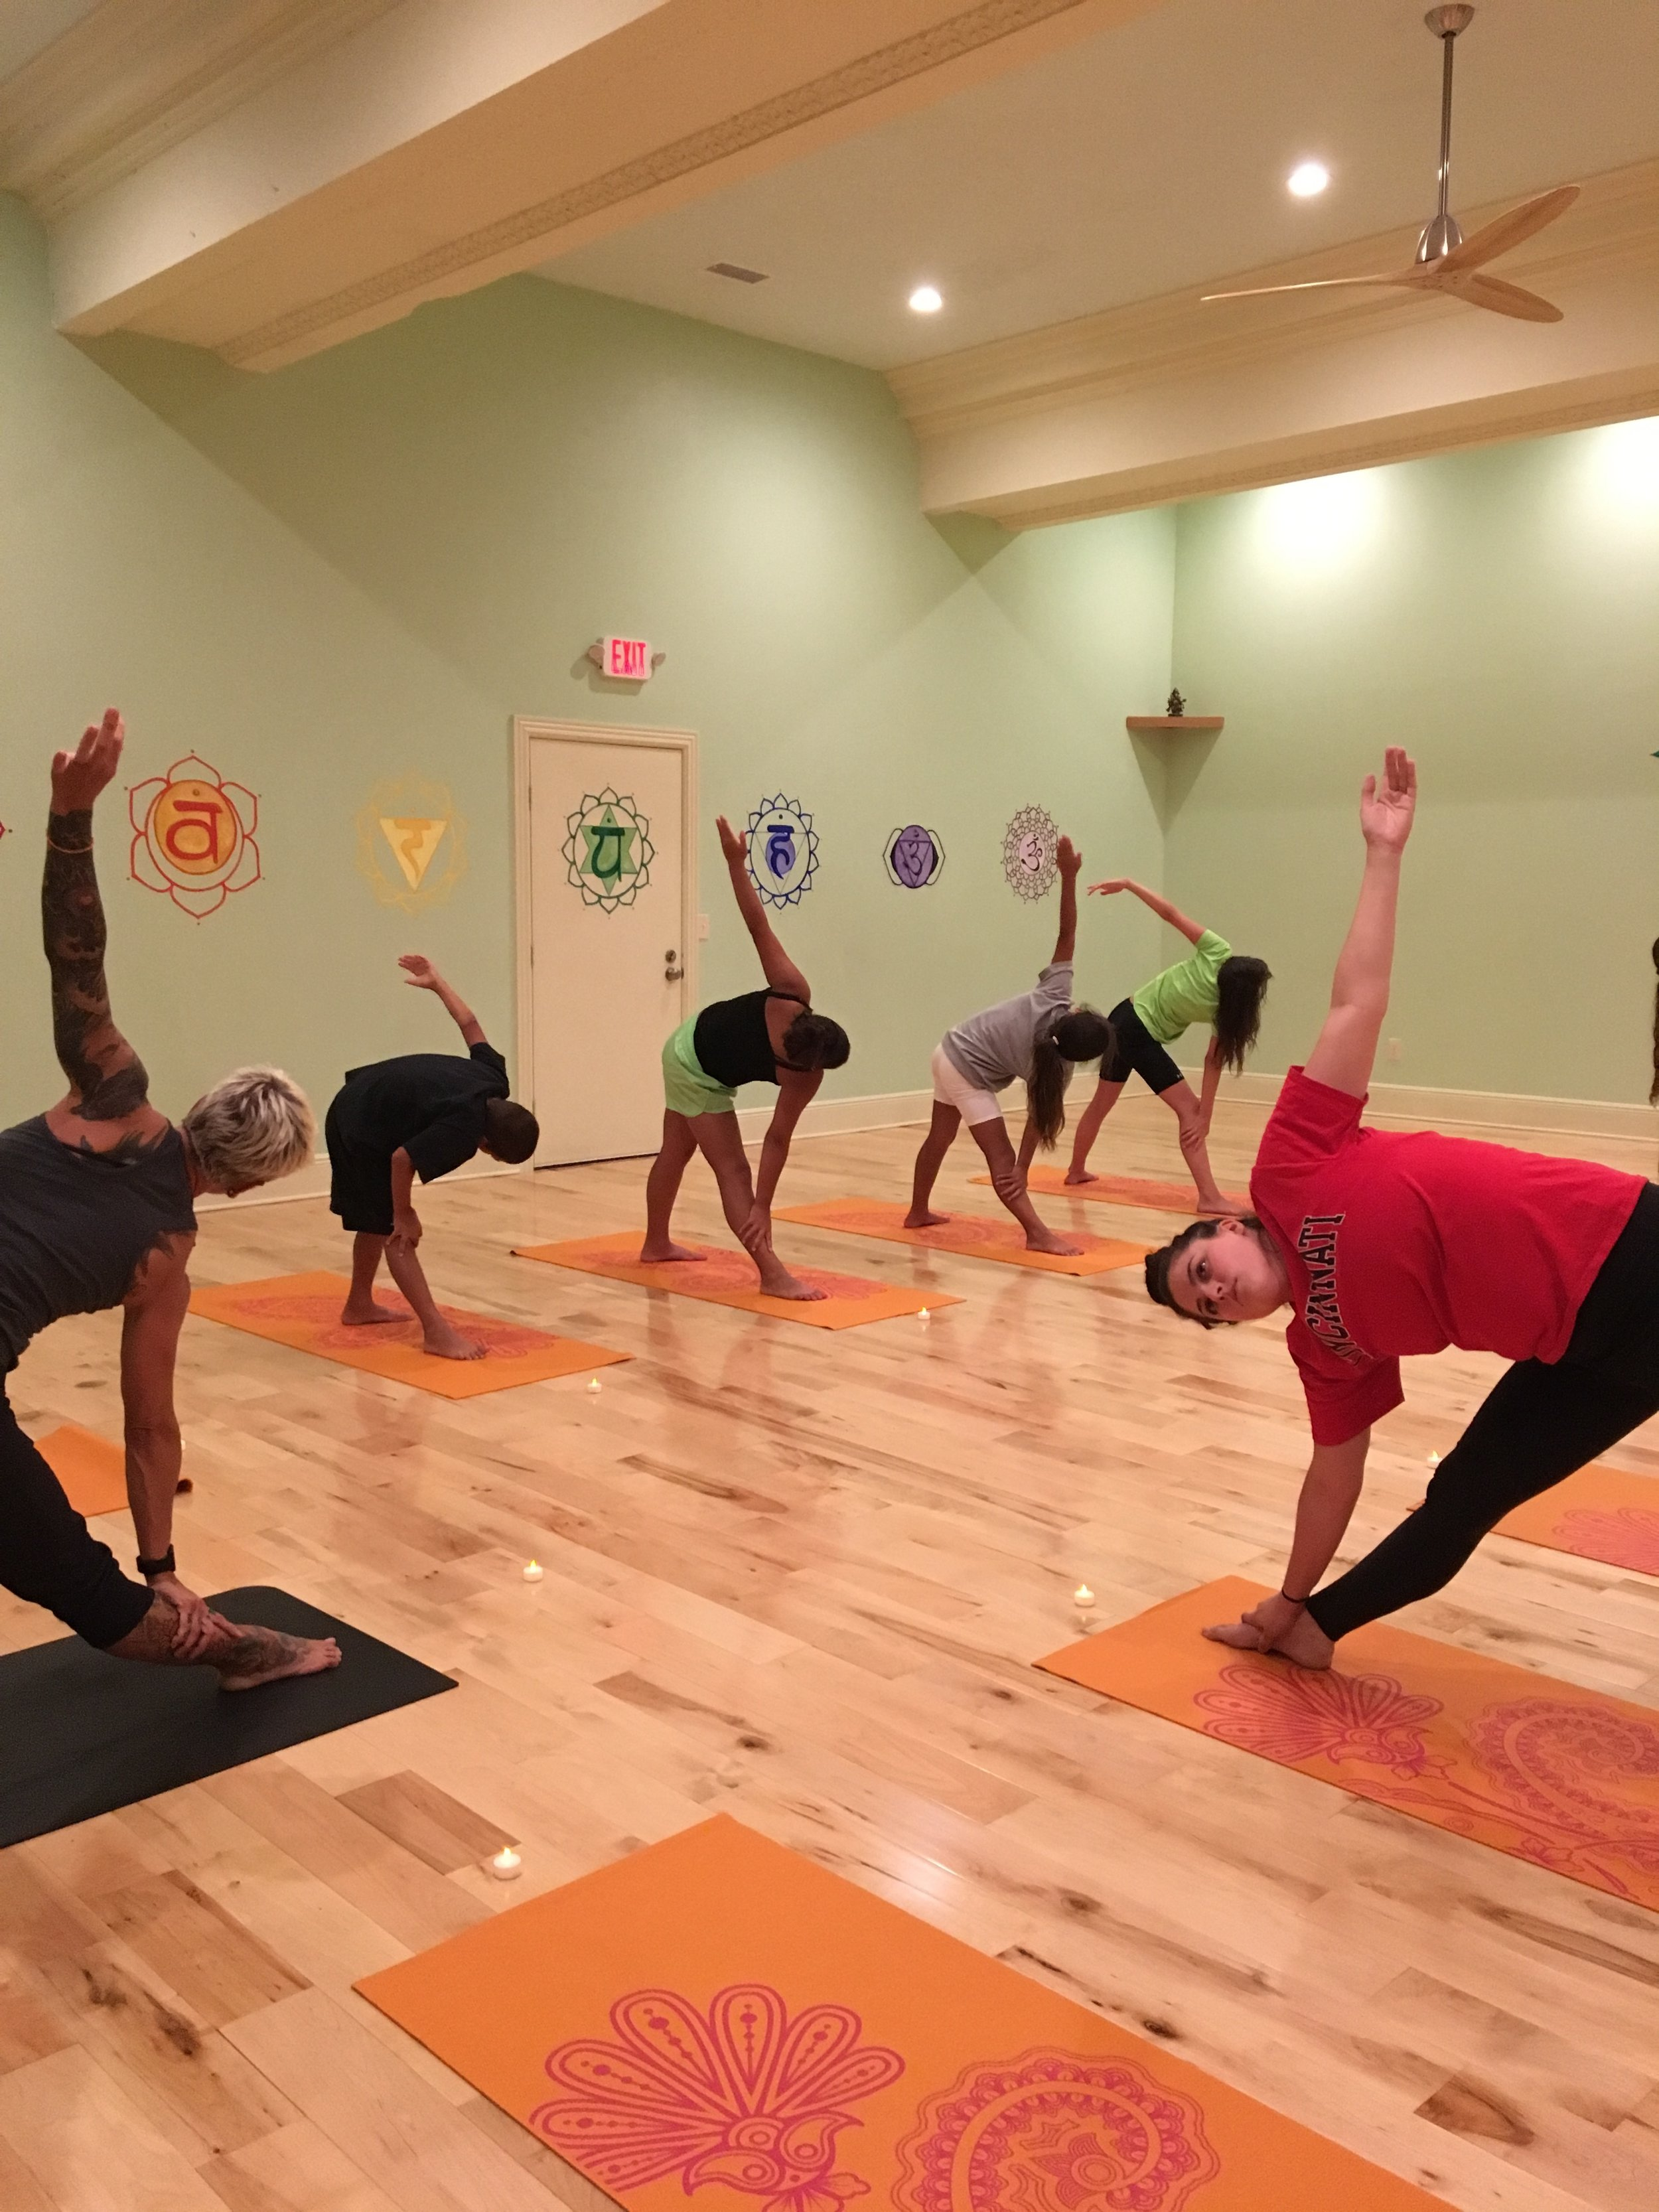 Gina Fennell, executive director of Project Yoga